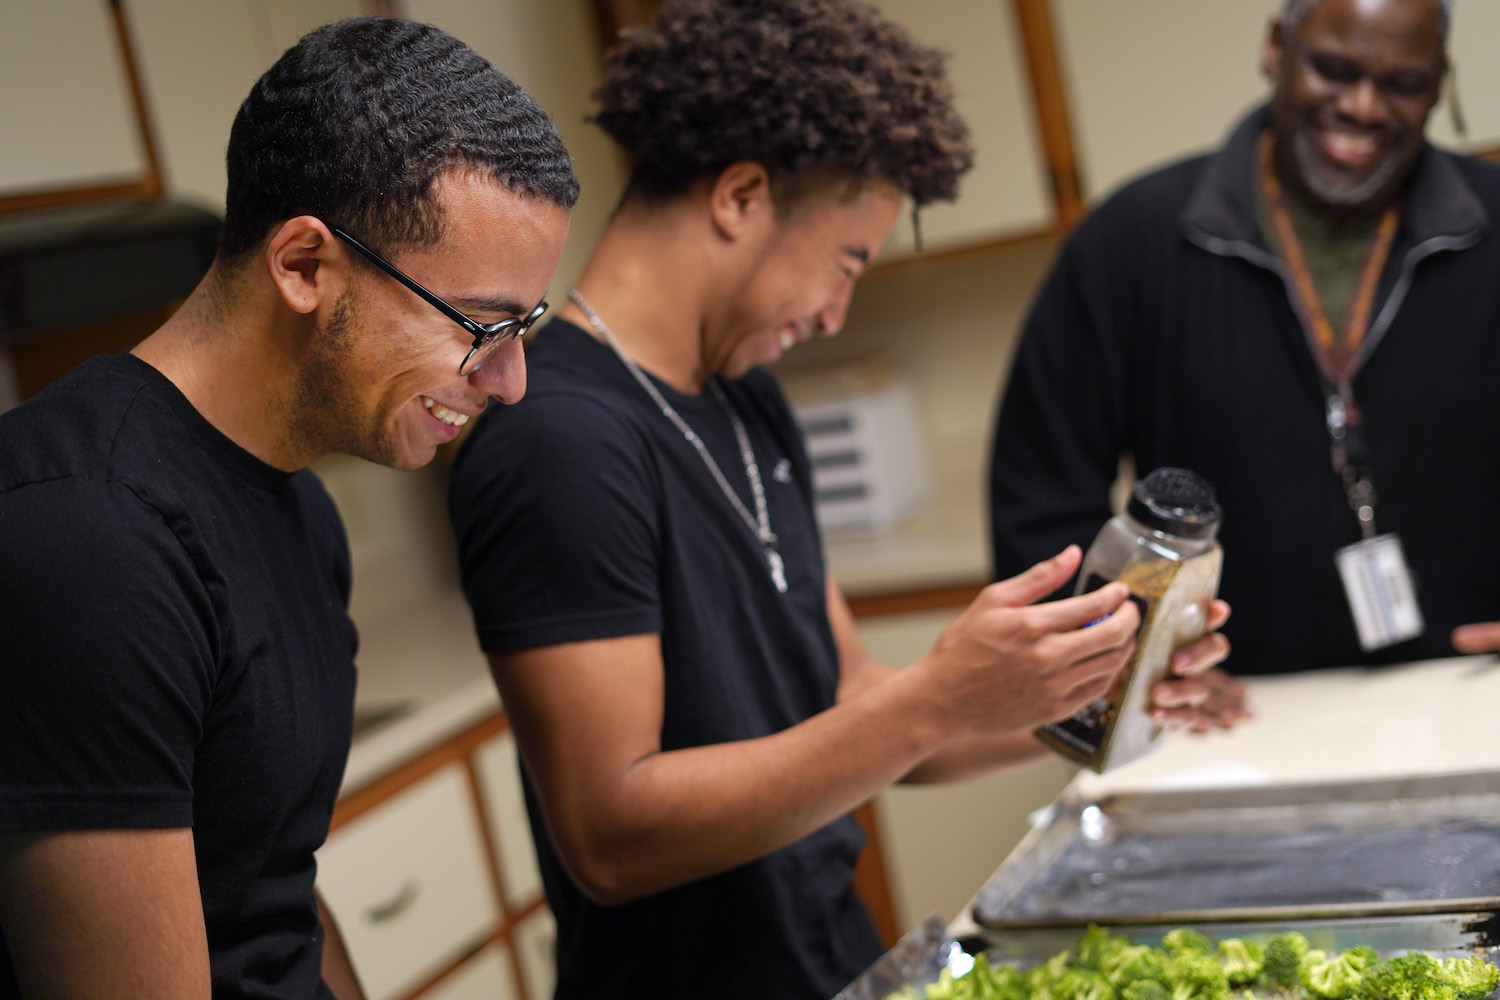 Milton Hershey School junior, Eli, cooks with a fellow student in his student home.